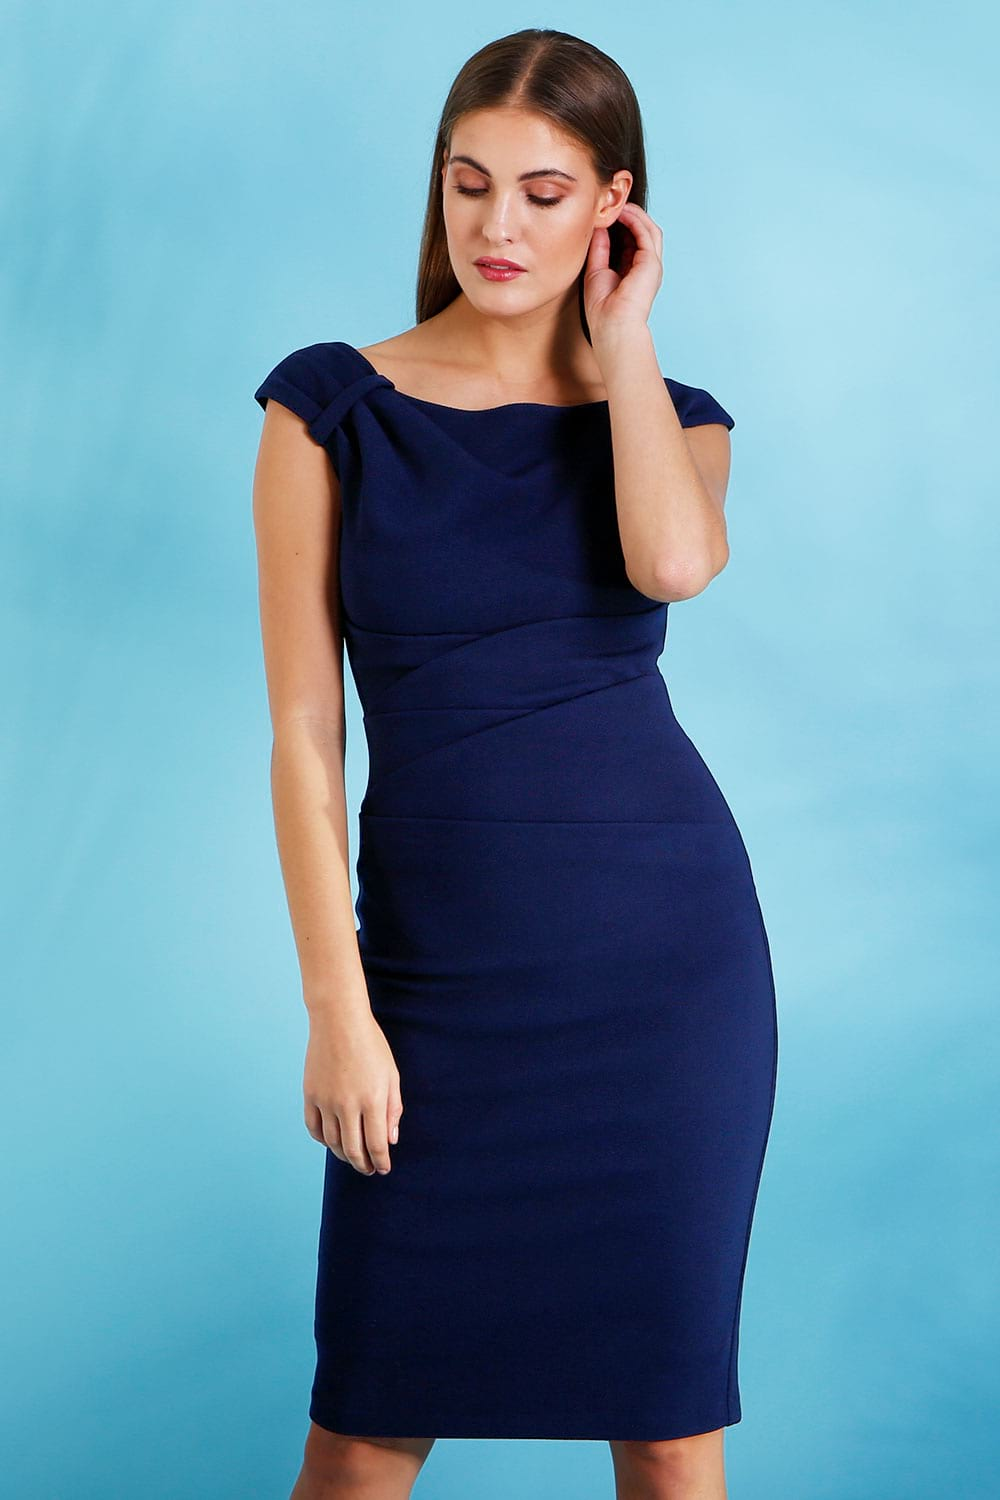 a4b6b0f2078 Hybrid Kelsey Off Shoulder Pencil Dress - Hybrid Fashion